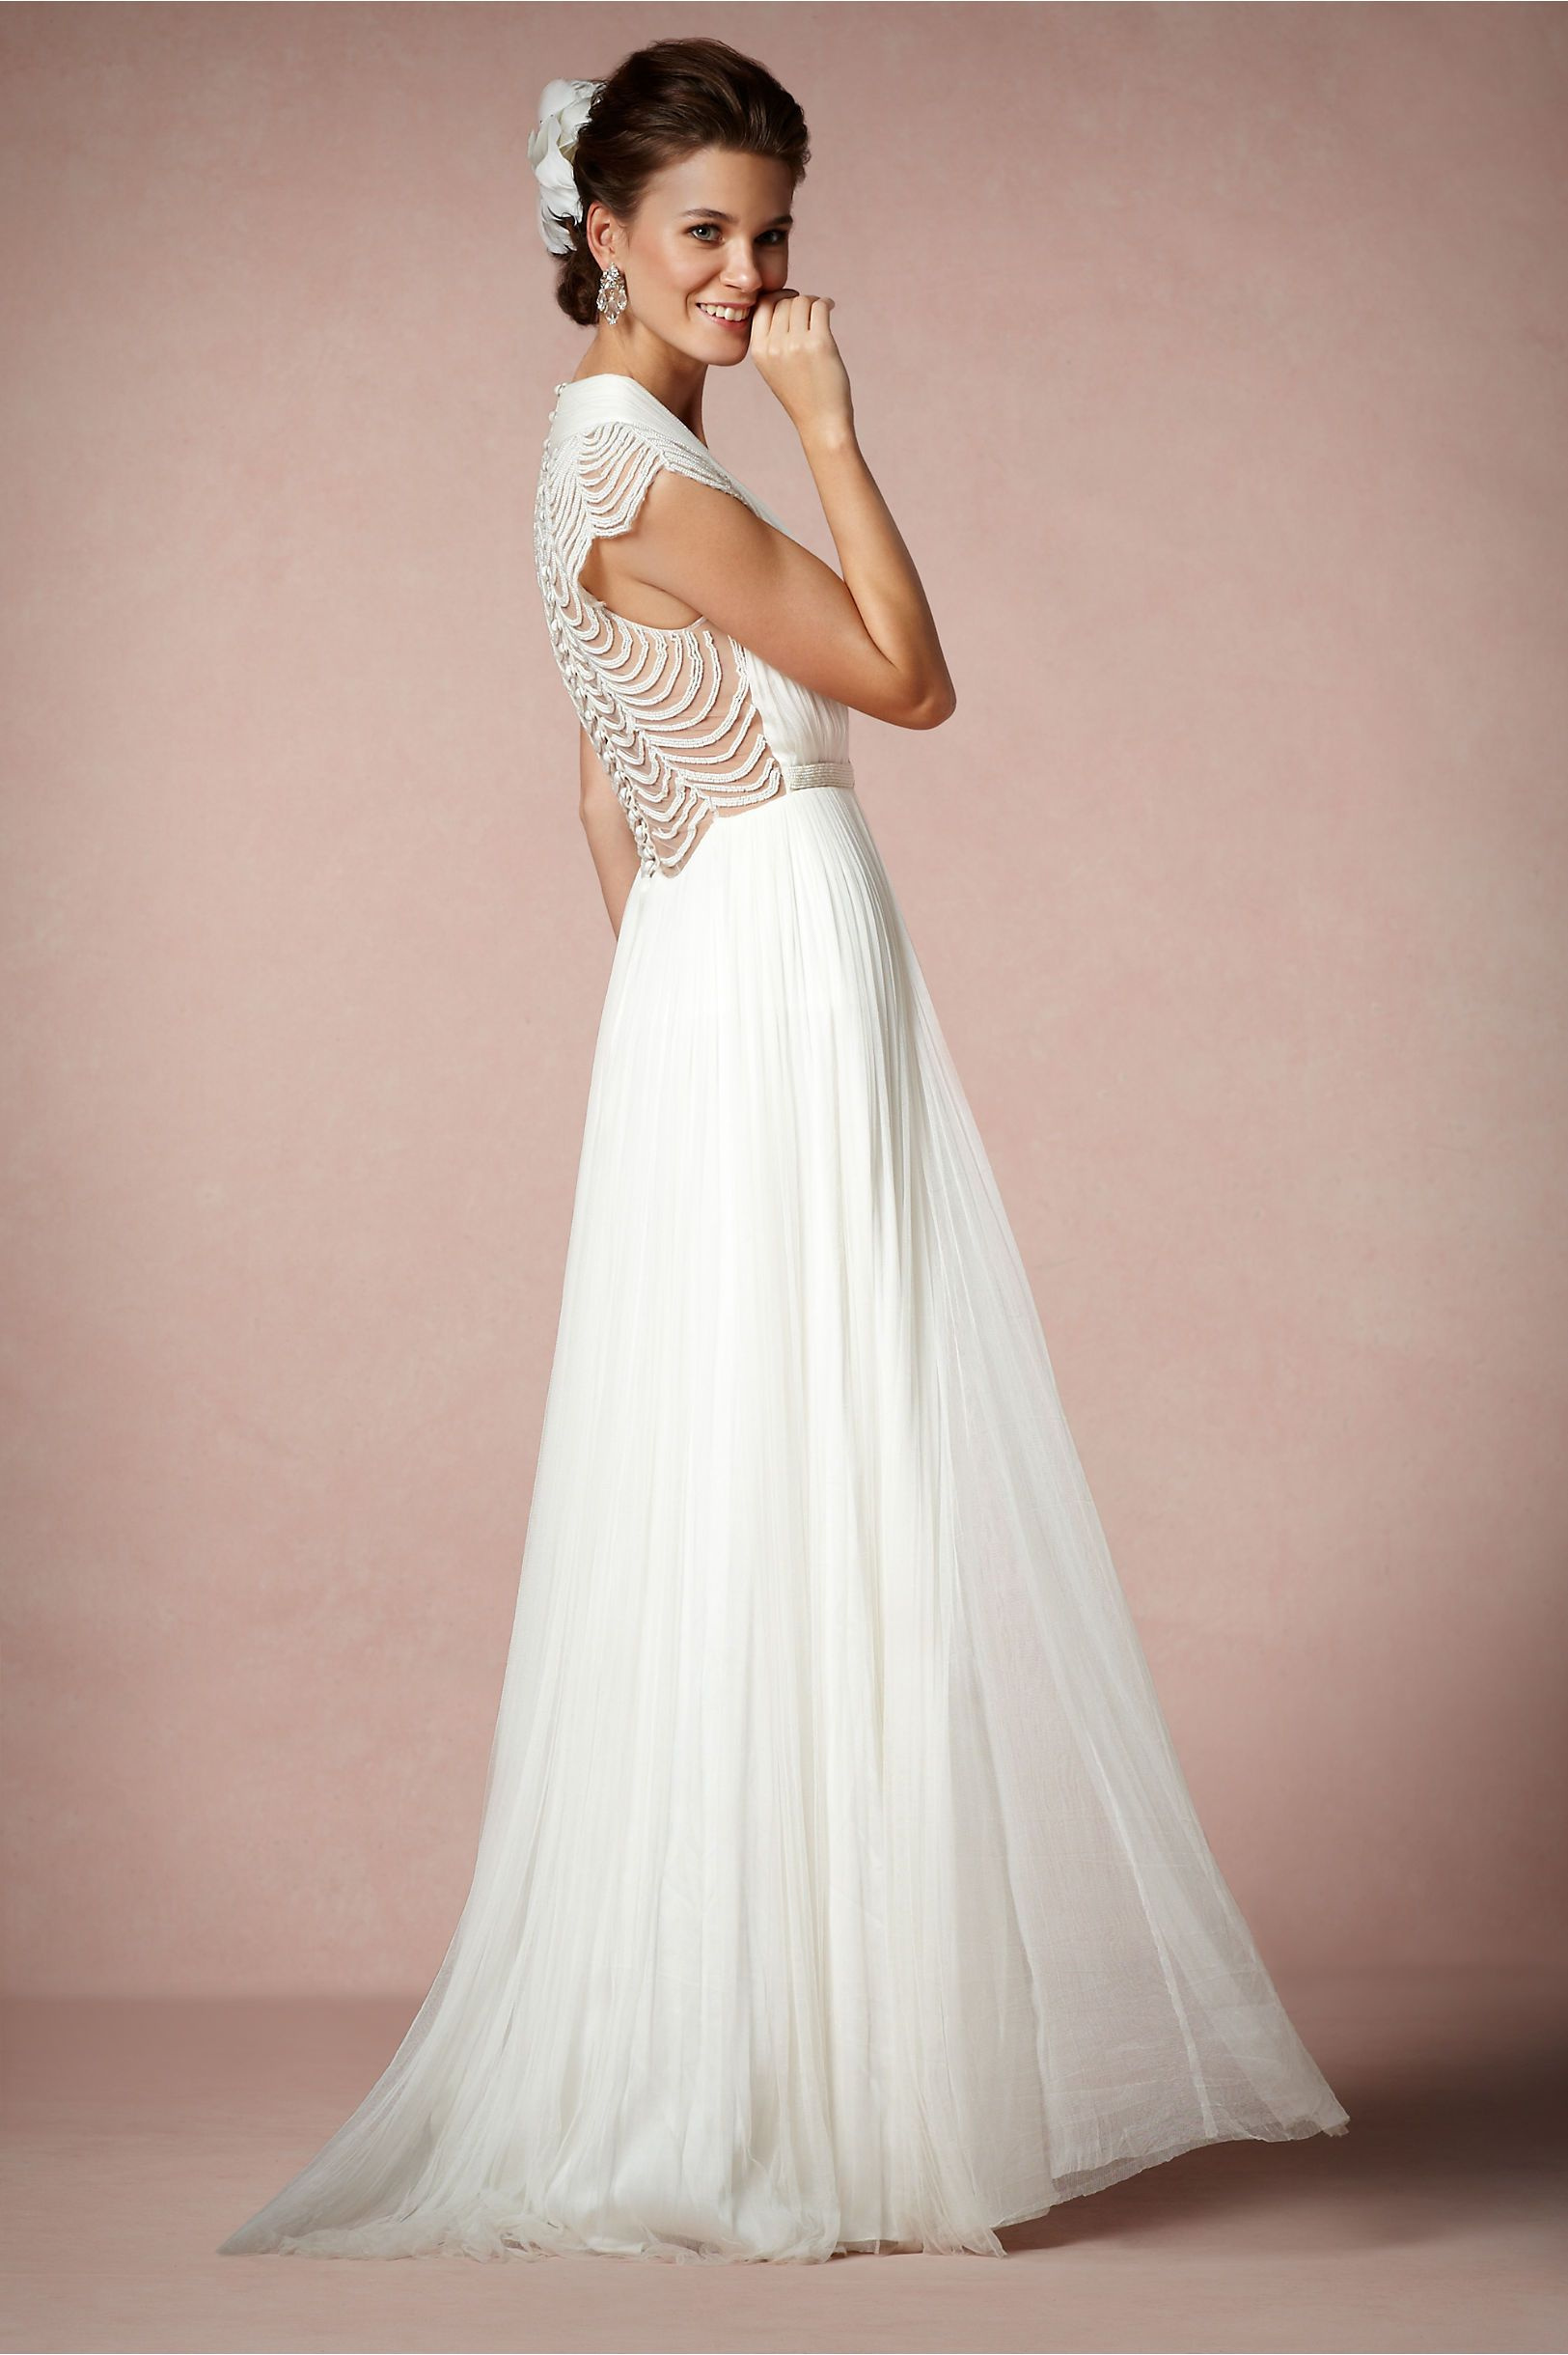 Ortensia Gown in The Bride Wedding Dresses at BHLDN | Modern Wedding ...